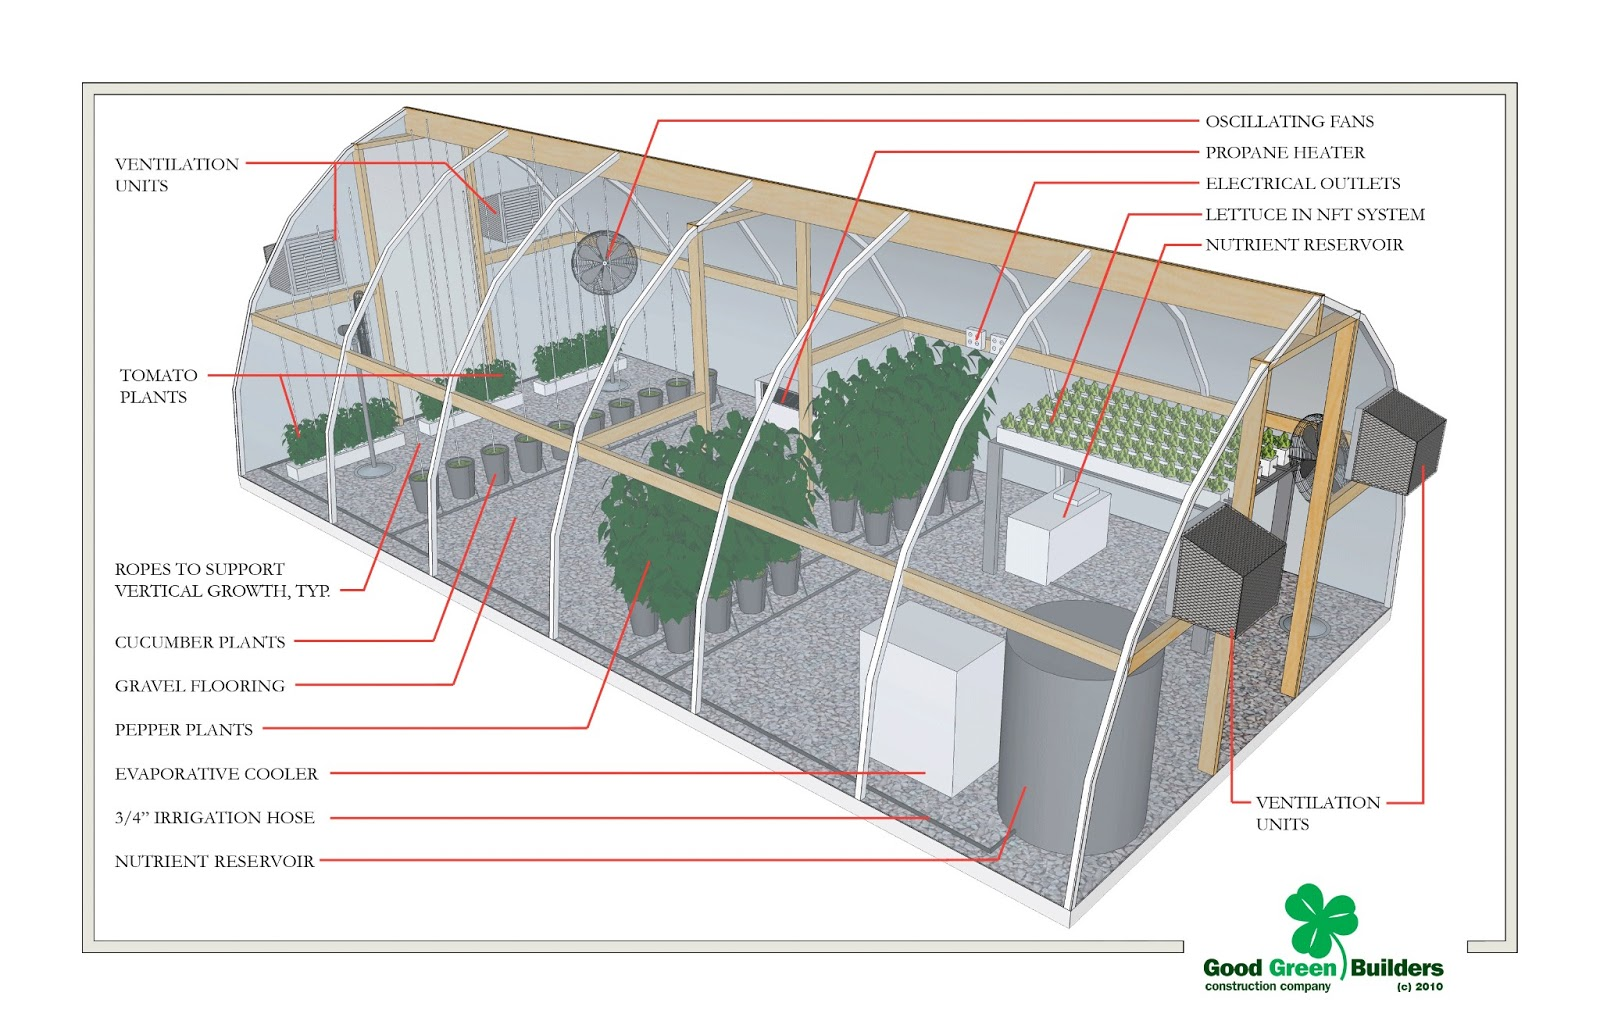 Small Hydroponic Greenhouse Designs on small garden greenhouse, small greenhouse frame, small greenhouse heating, small greenhouse supplies, small greenhouse plans, small pvc greenhouse, small winter greenhouse, small propagation greenhouse, small hobby greenhouse, small solar greenhouse, small metal greenhouse, small indoor greenhouse, small container greenhouse, small greenhouse foundation, small portable greenhouses, small hoop greenhouse, small plant greenhouse, small farm greenhouse, small cannabis greenhouse, small mushroom greenhouse,